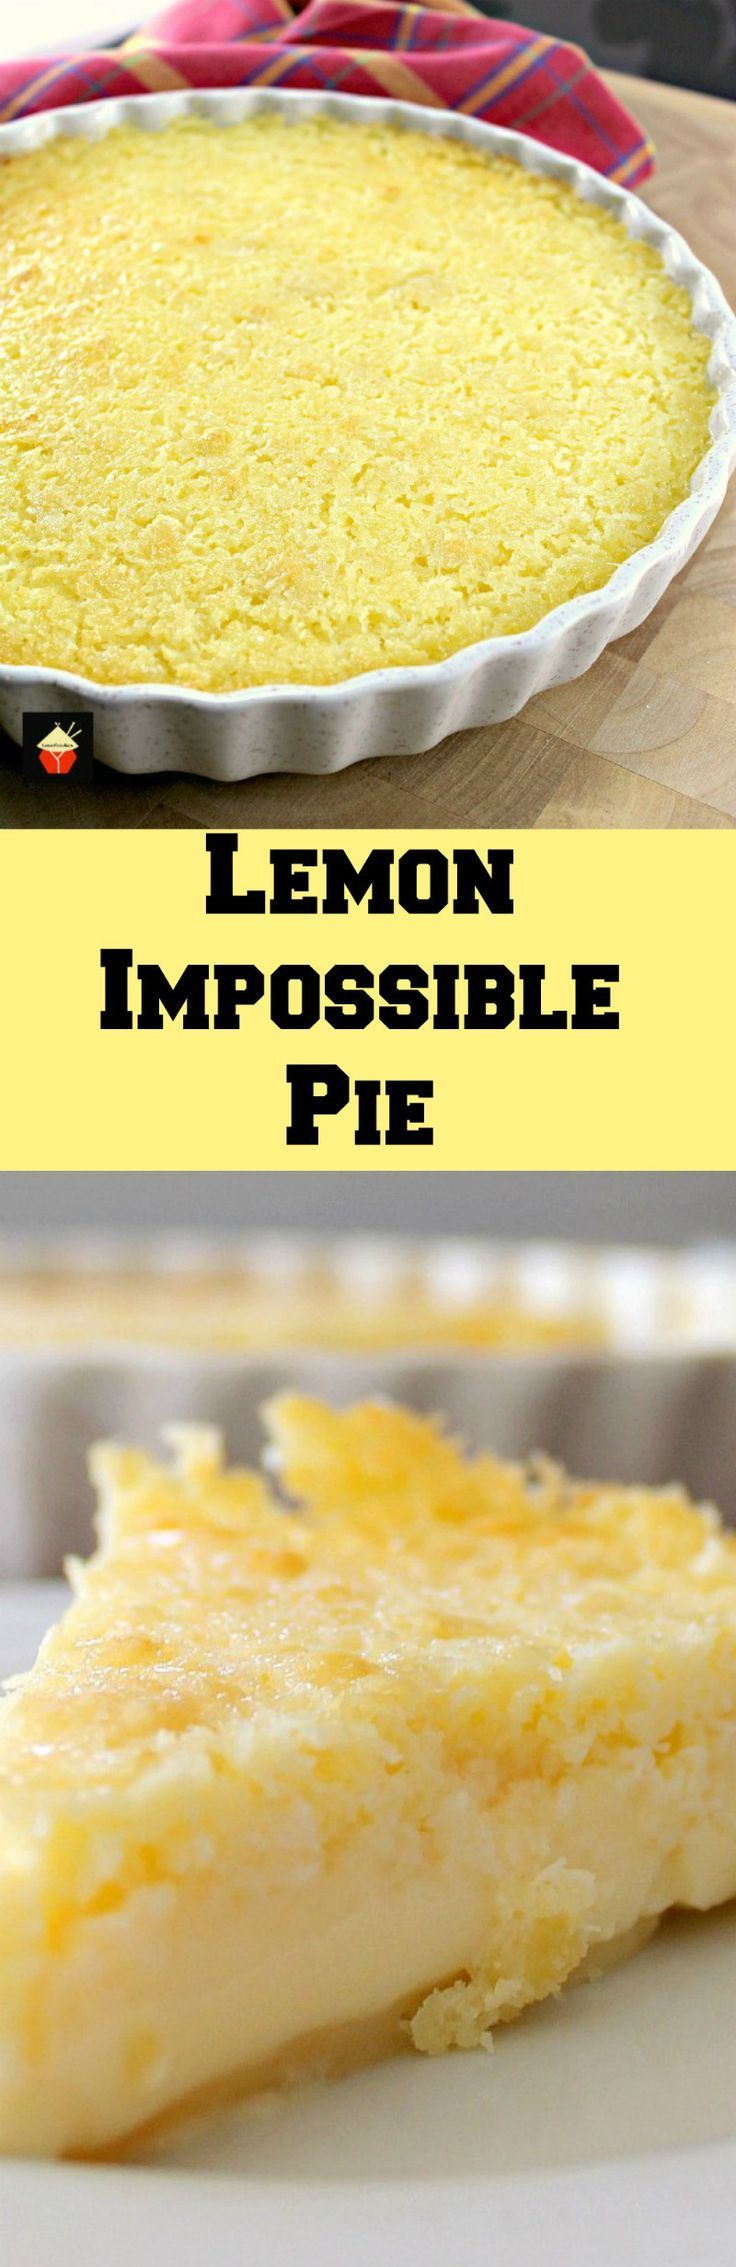 Lemon Impossible Pie! Incredibly easy to make and the flavor is amazing!   Lovefoodies.com